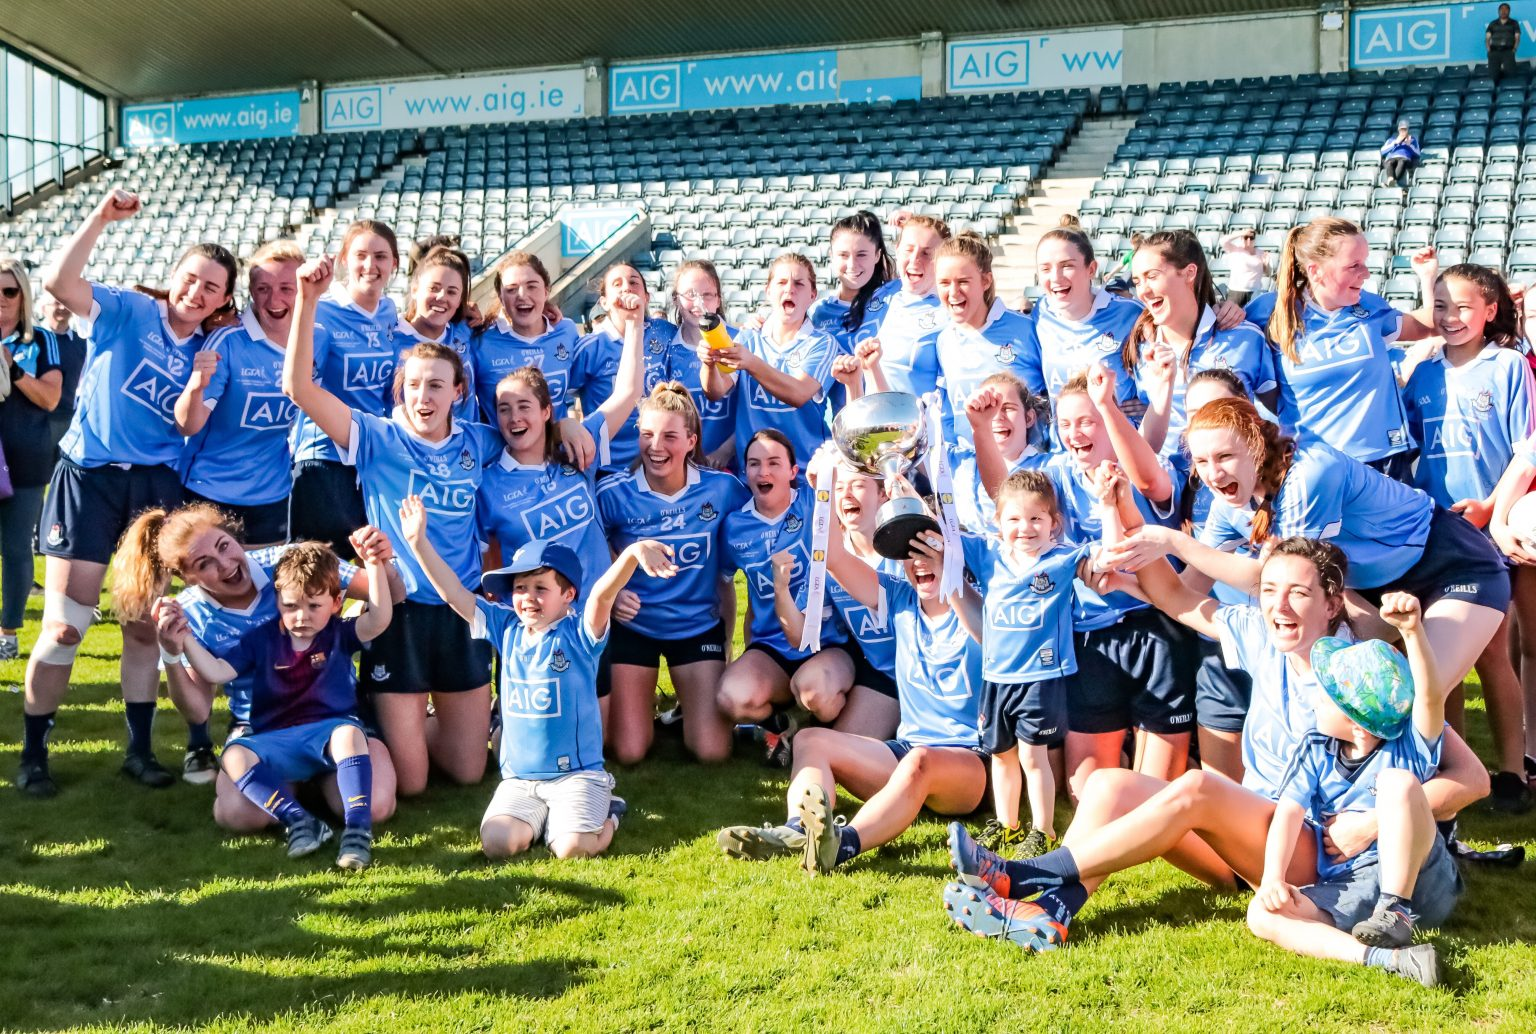 Dublin Senior Ladies Football Squad In Sky Blue Jerseys Celebrating winning their first ever Division 1 League Title